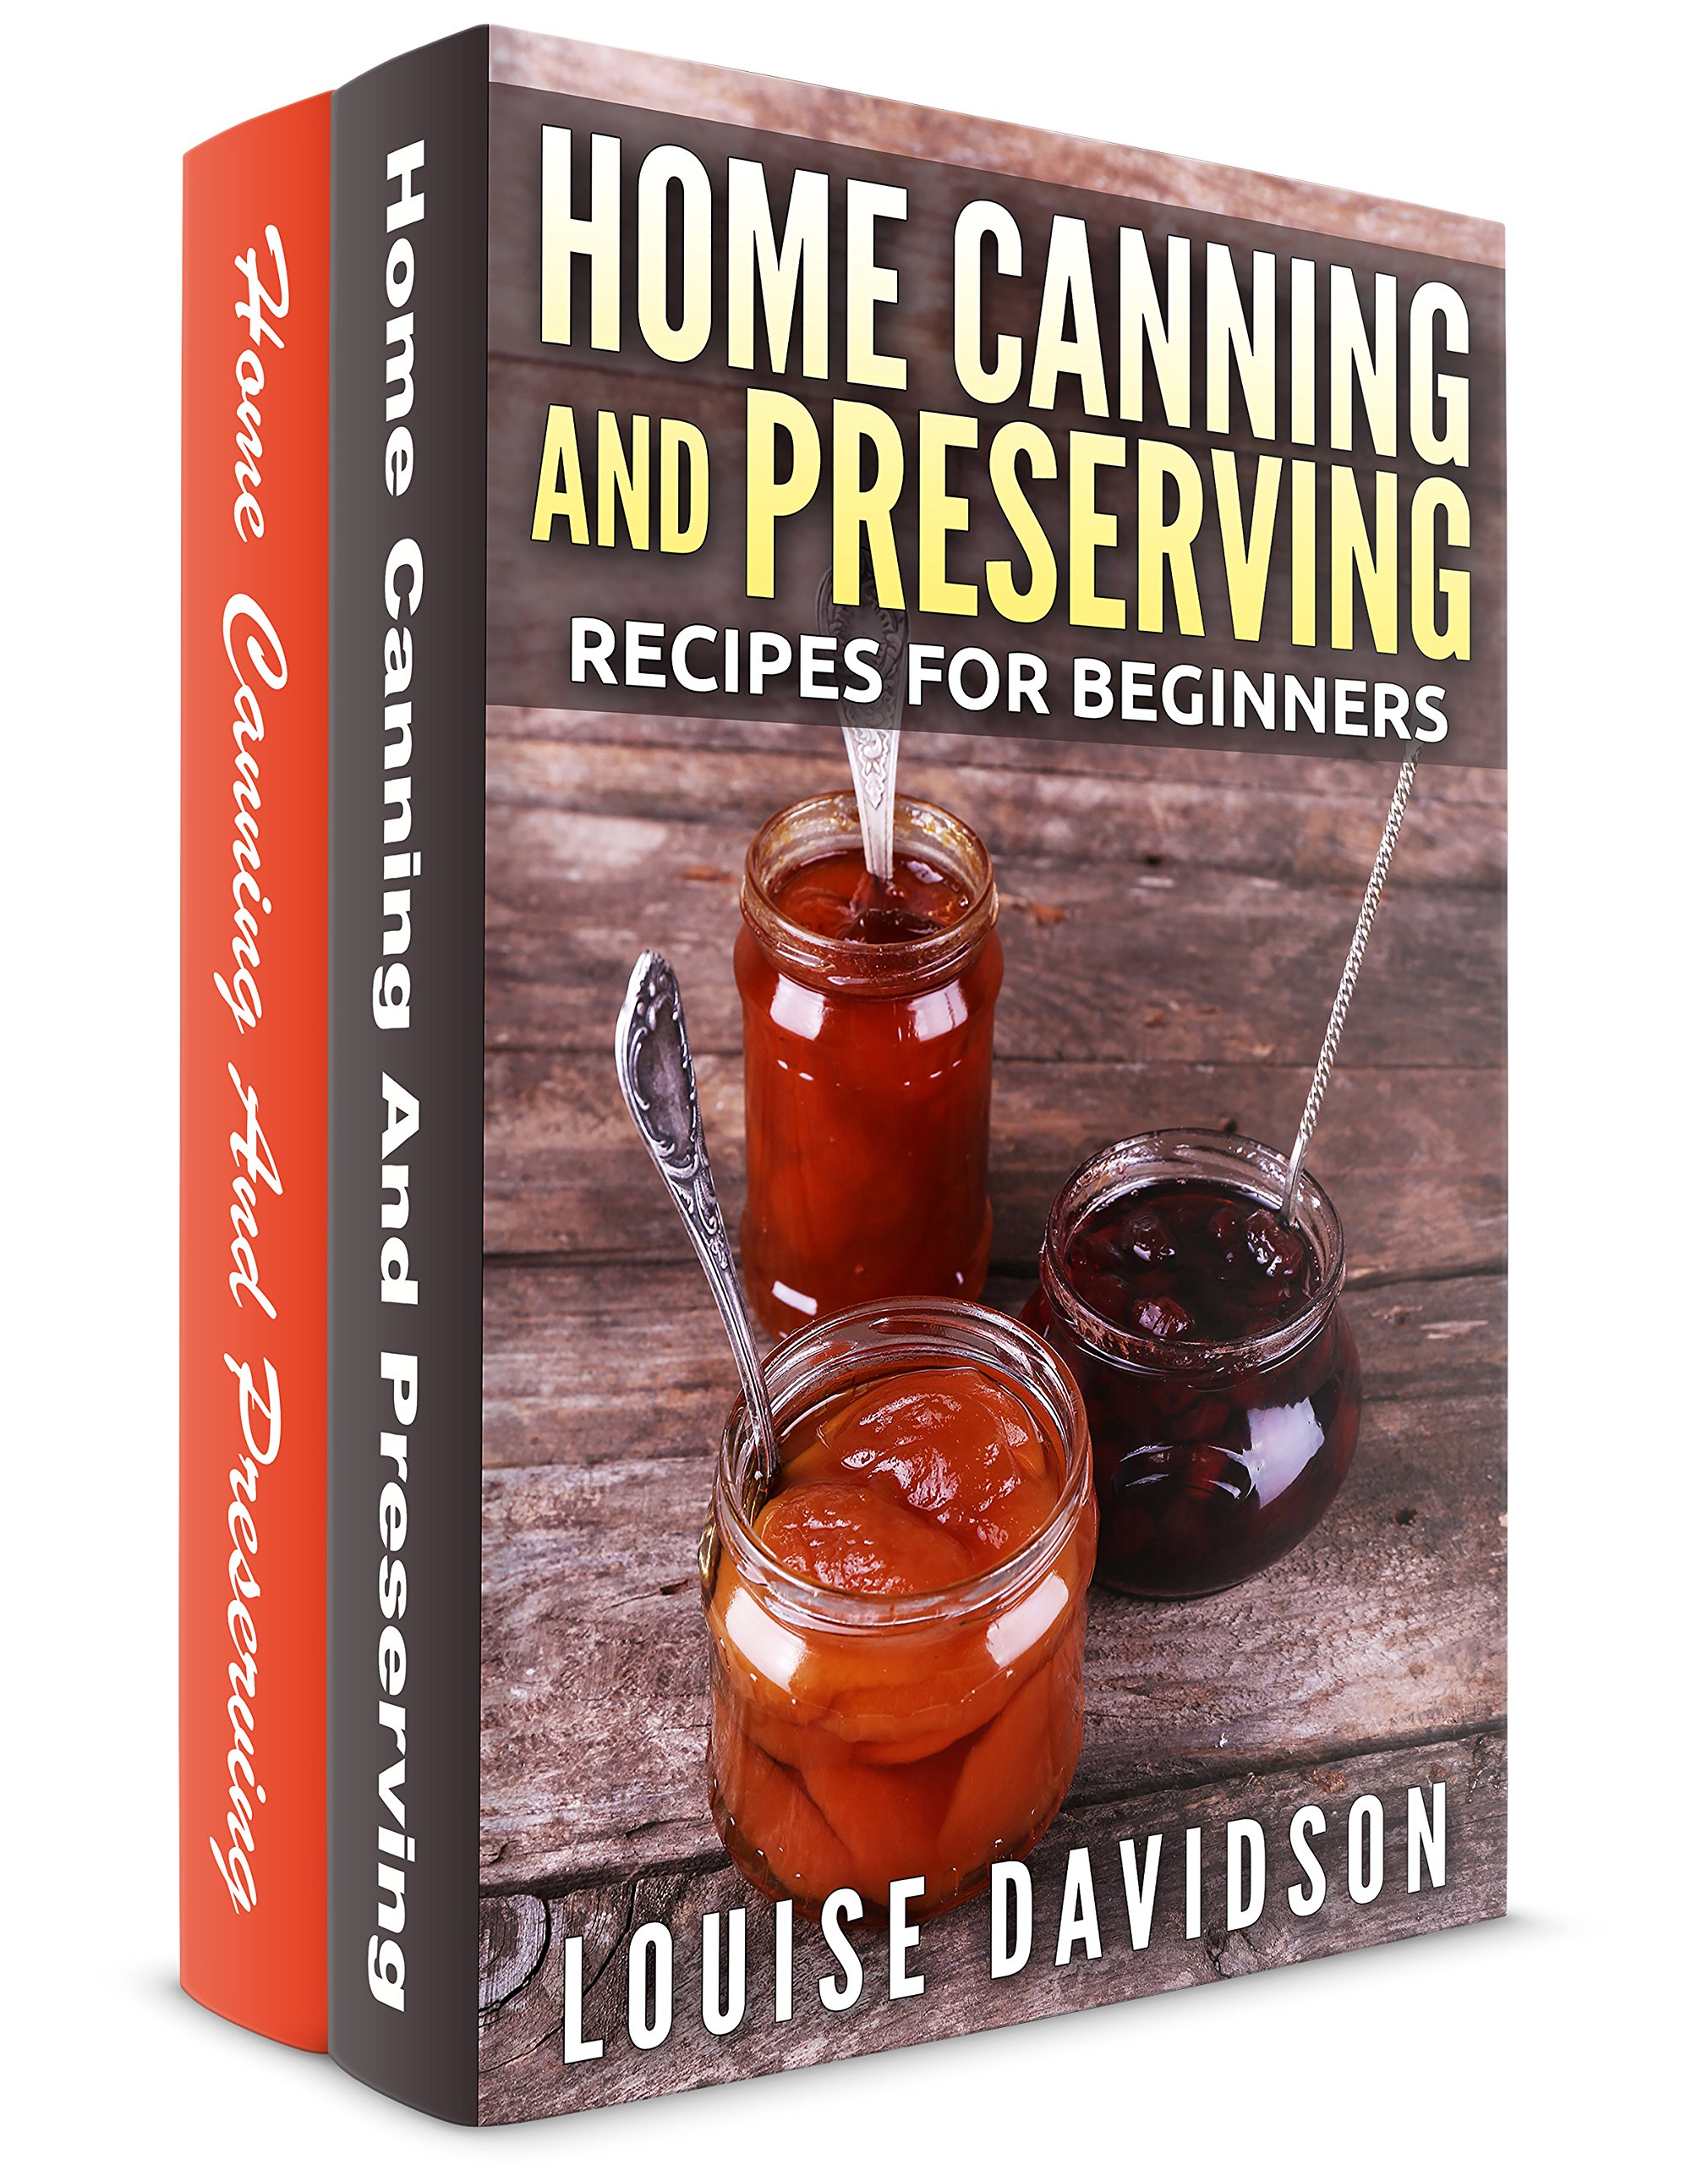 Home Canning And Preserving Recipes For Beginners 2 Books In 1 Book Set: Home Canning And Preserving Recipes For Beginners...